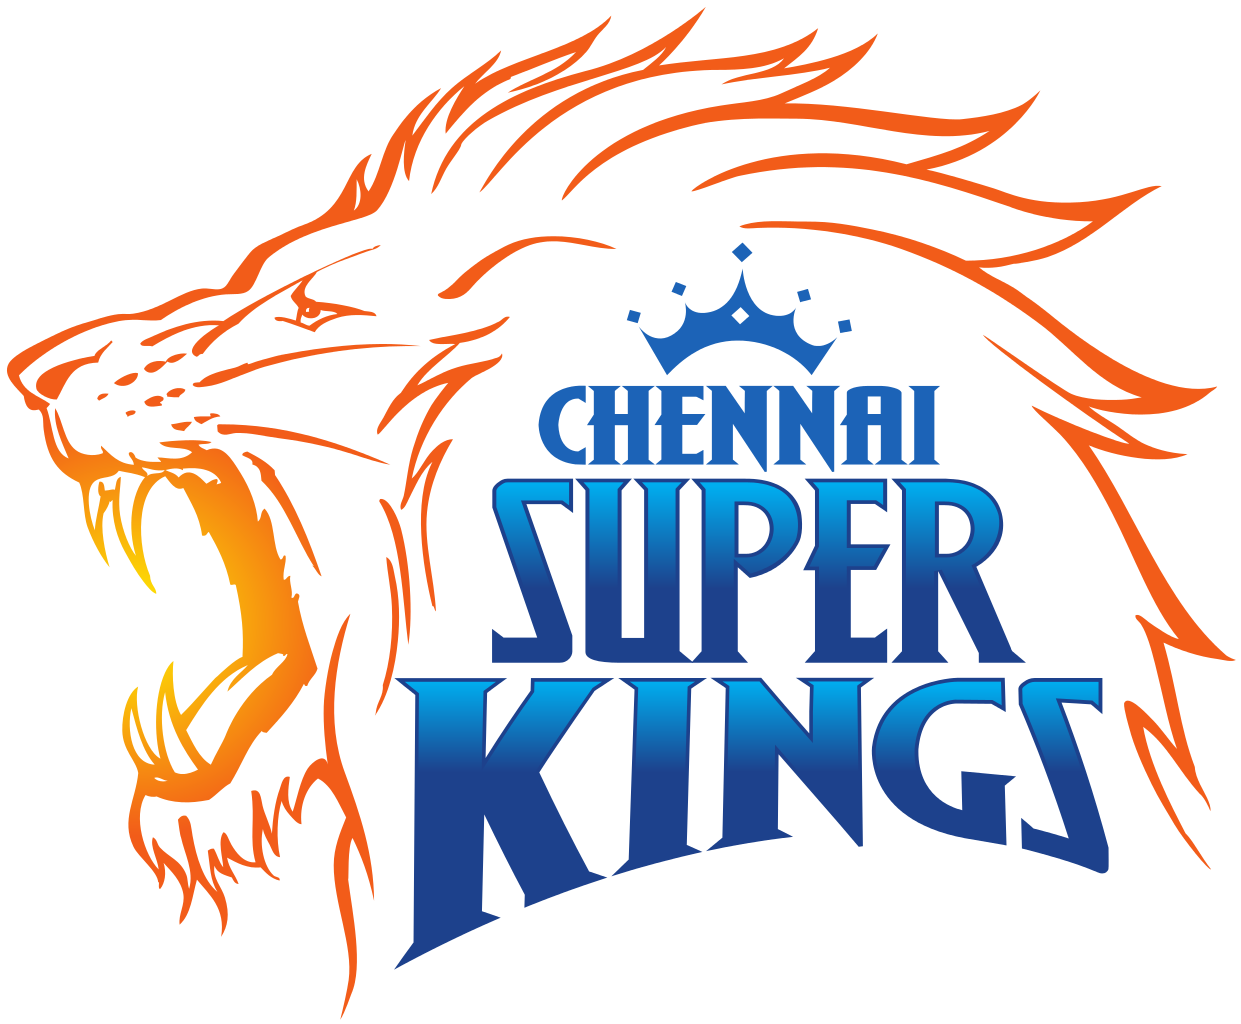 Chennai Super Kings Oxygen.png